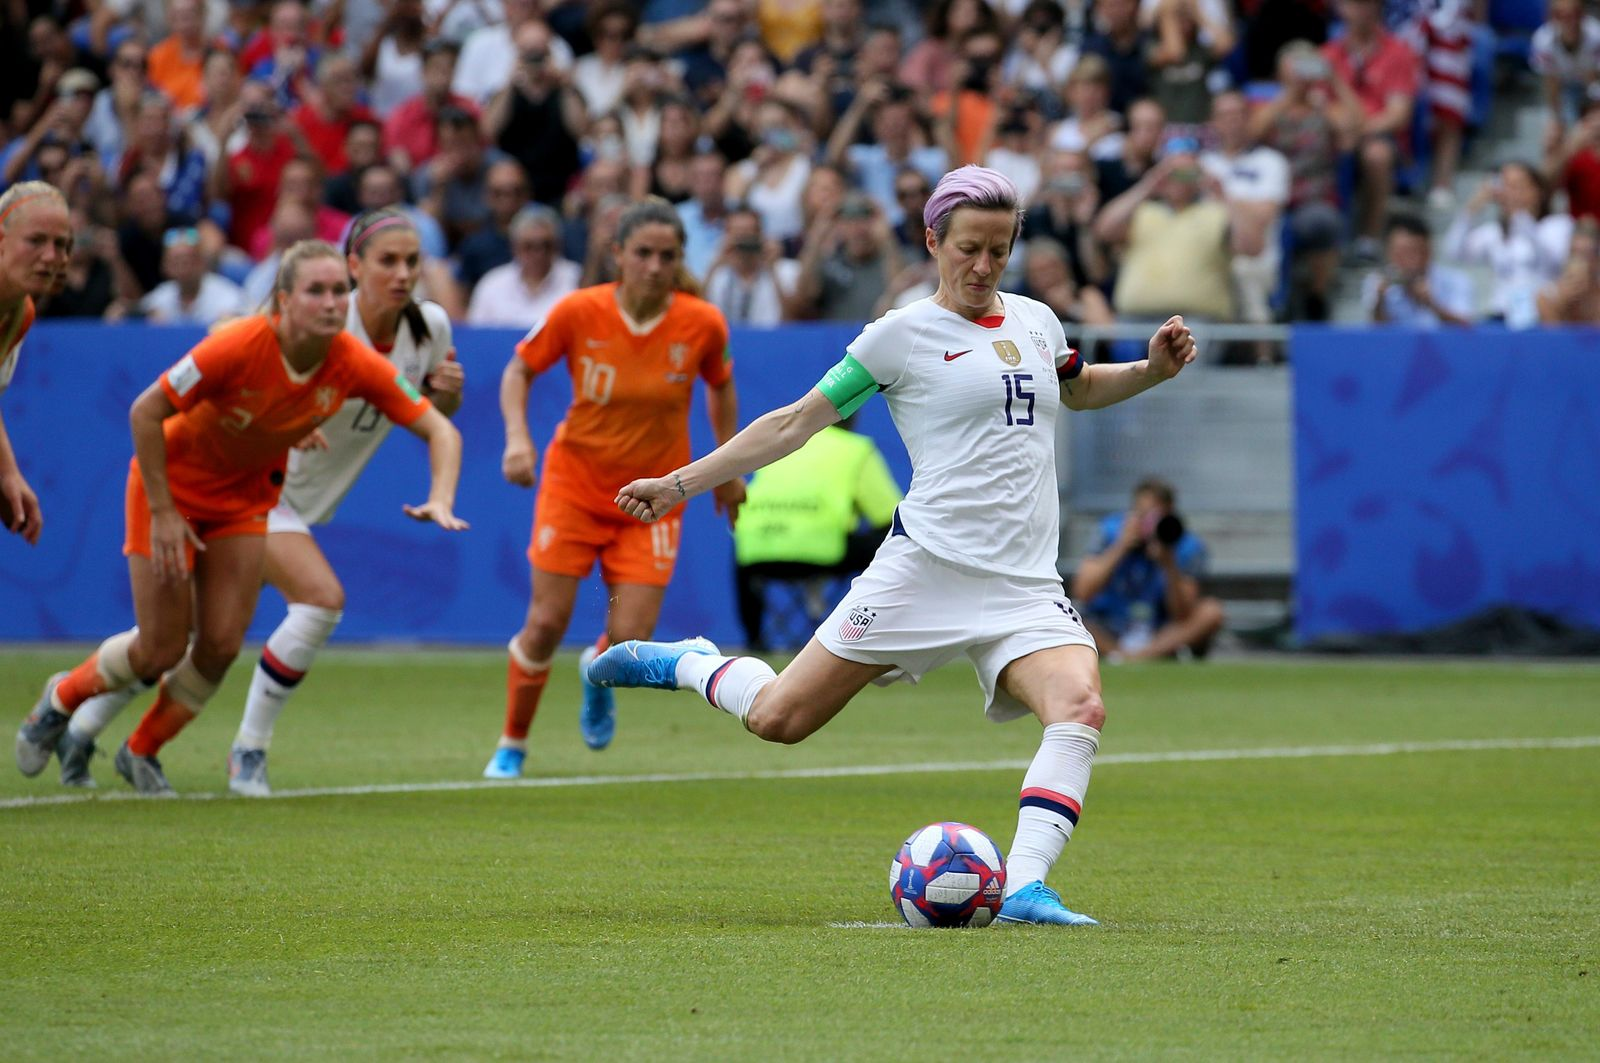 FILE - In this July 7, 2019, file photo, United States' Megan Rapinoe scores her side's opening goal from a penalty shot during the Women's World Cup final soccer match against The Netherlands at the Stade de Lyon in Decines, outside Lyon, France. (AP Photo/David Vincent, File)